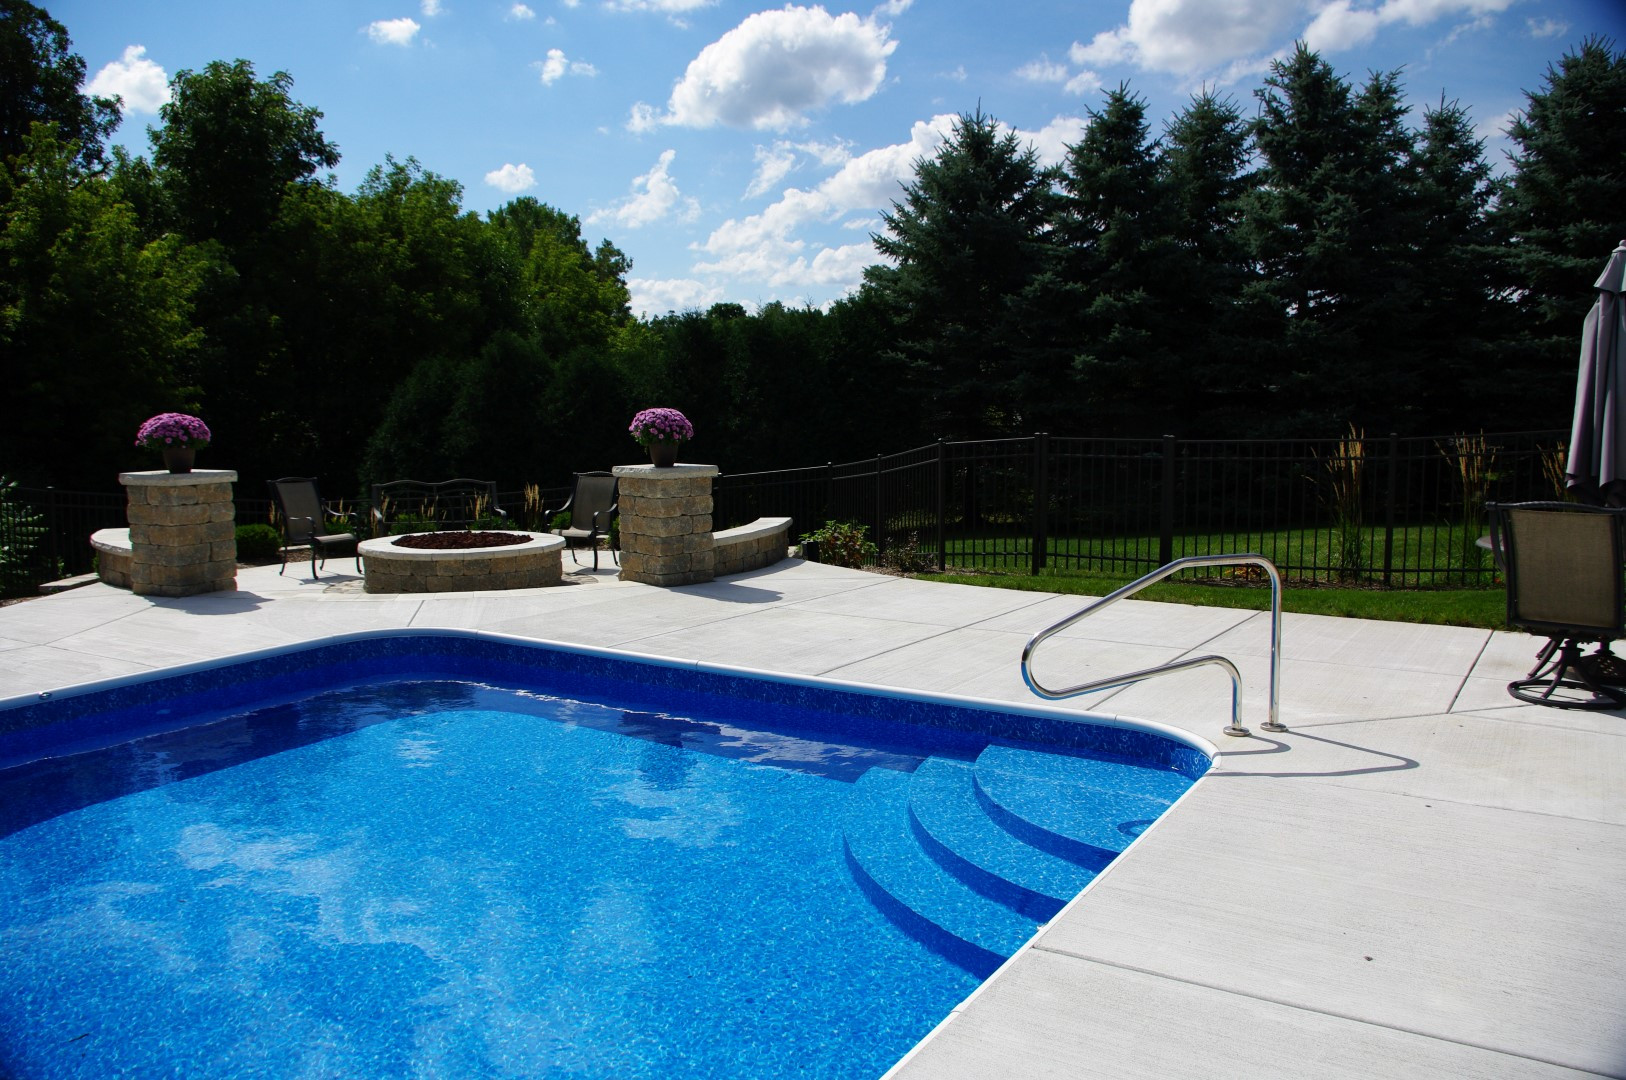 Best ideas about Pool Steps For Inground Pool . Save or Pin Penguin Pool s Custom Inground Pool Steps made of Concrete Now.